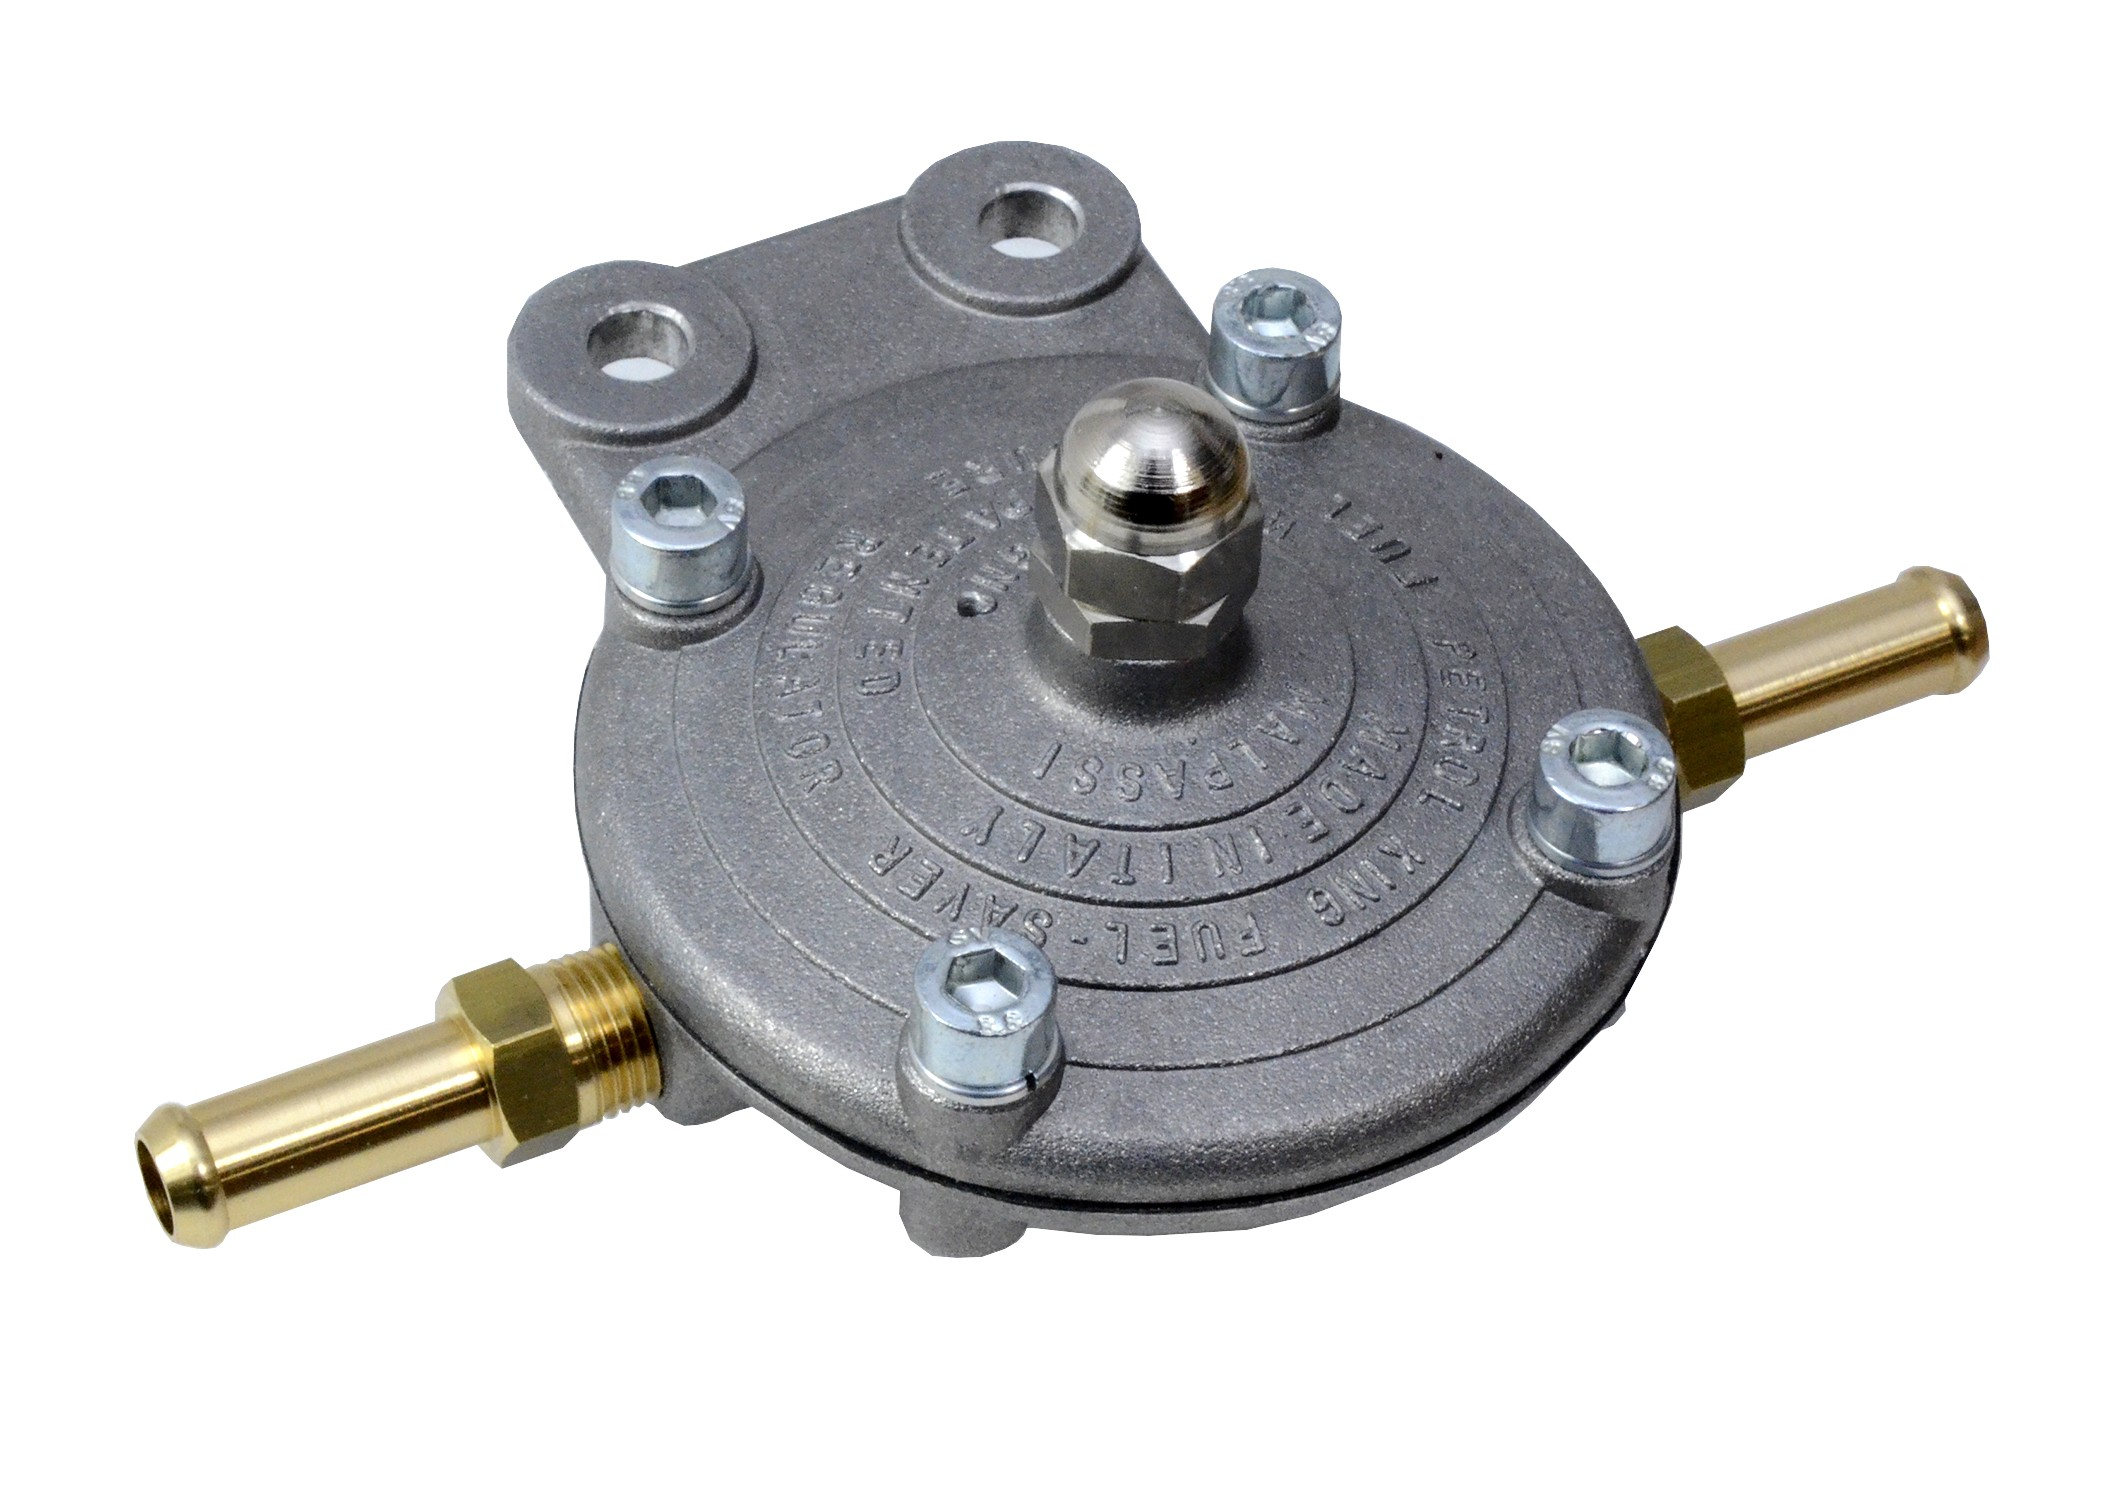 Malpassi Petrol King Fuel Regulators